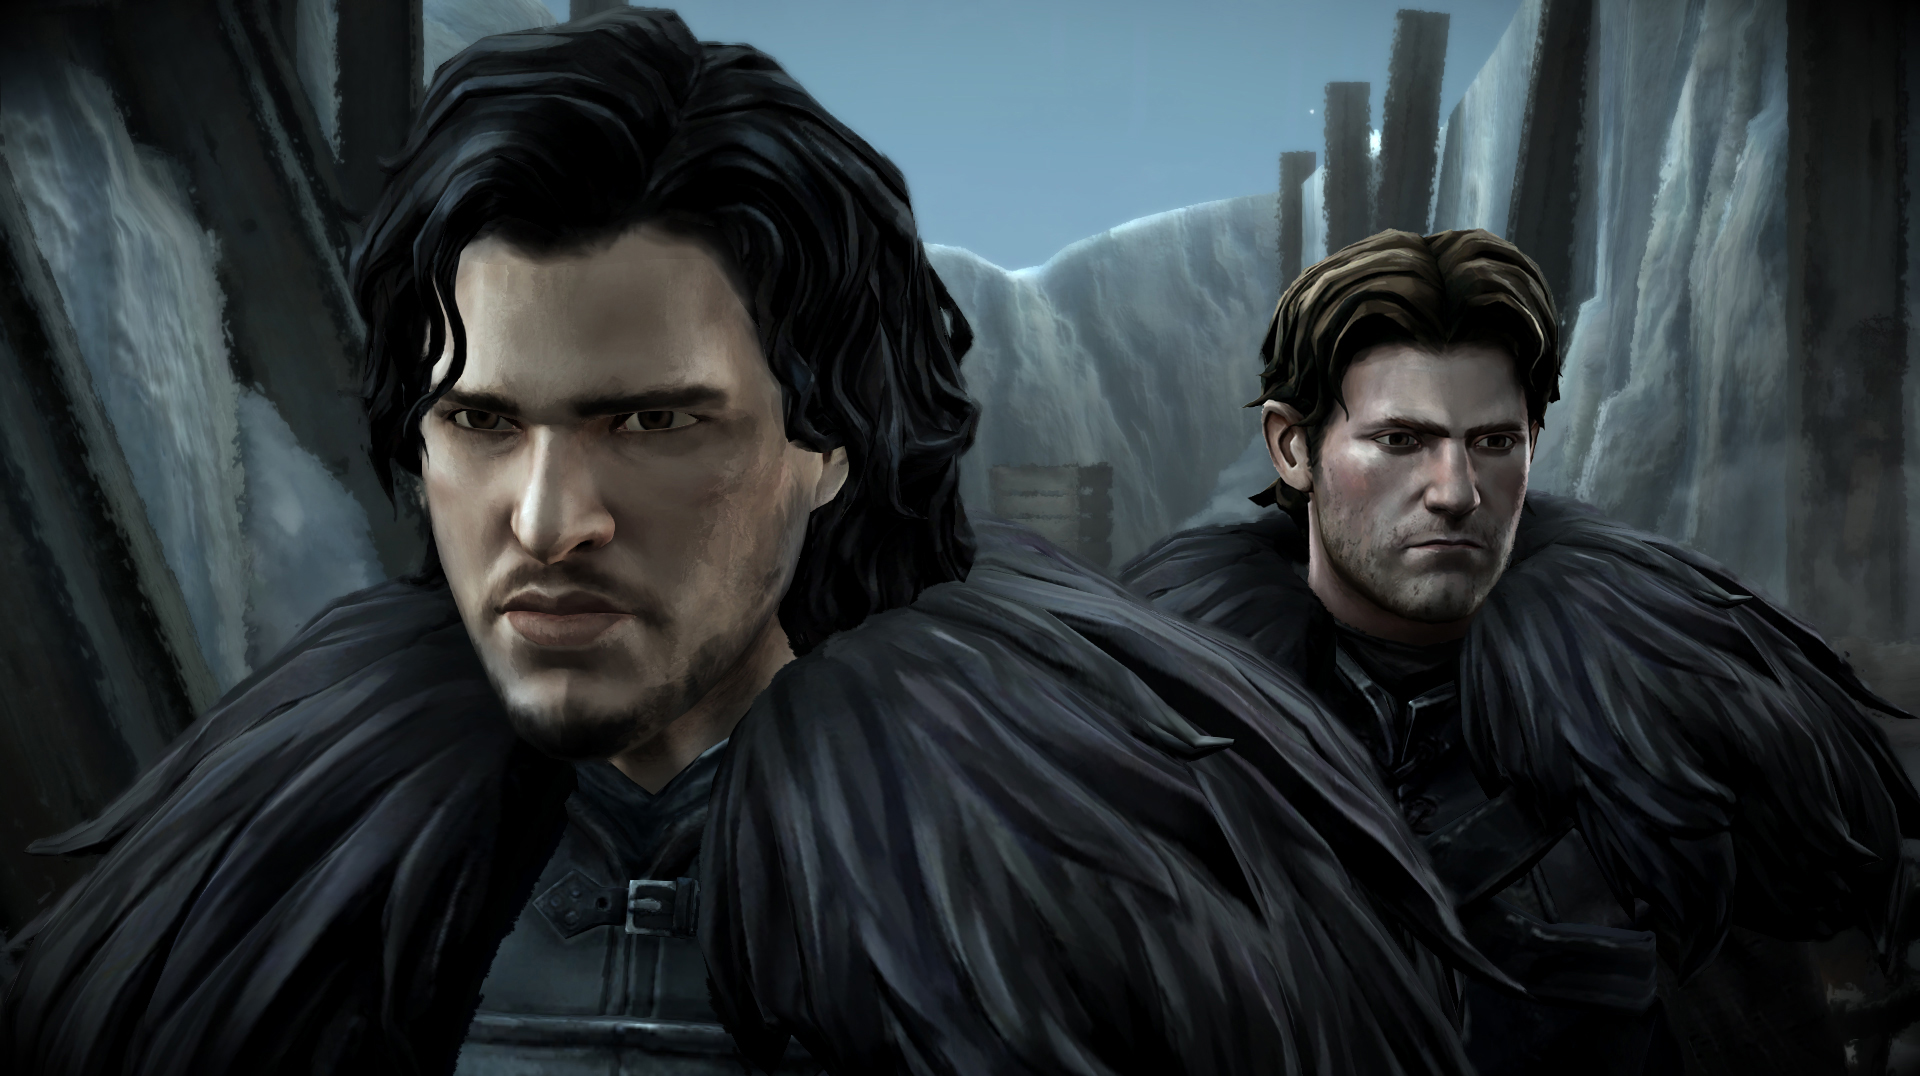 Game of Thrones - A Telltale Games Series (Steam CIS)